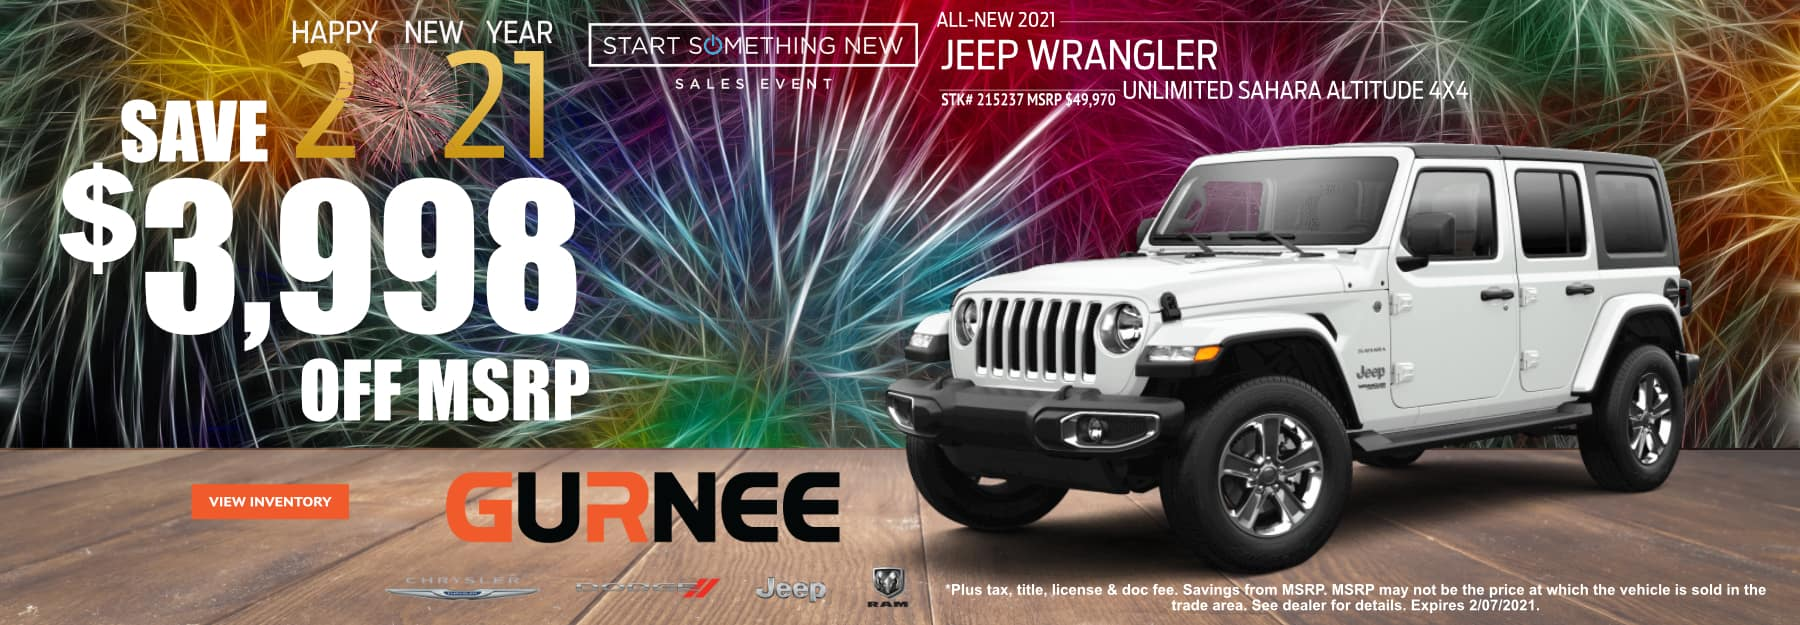 January-2021 Wrangler_Gurnee